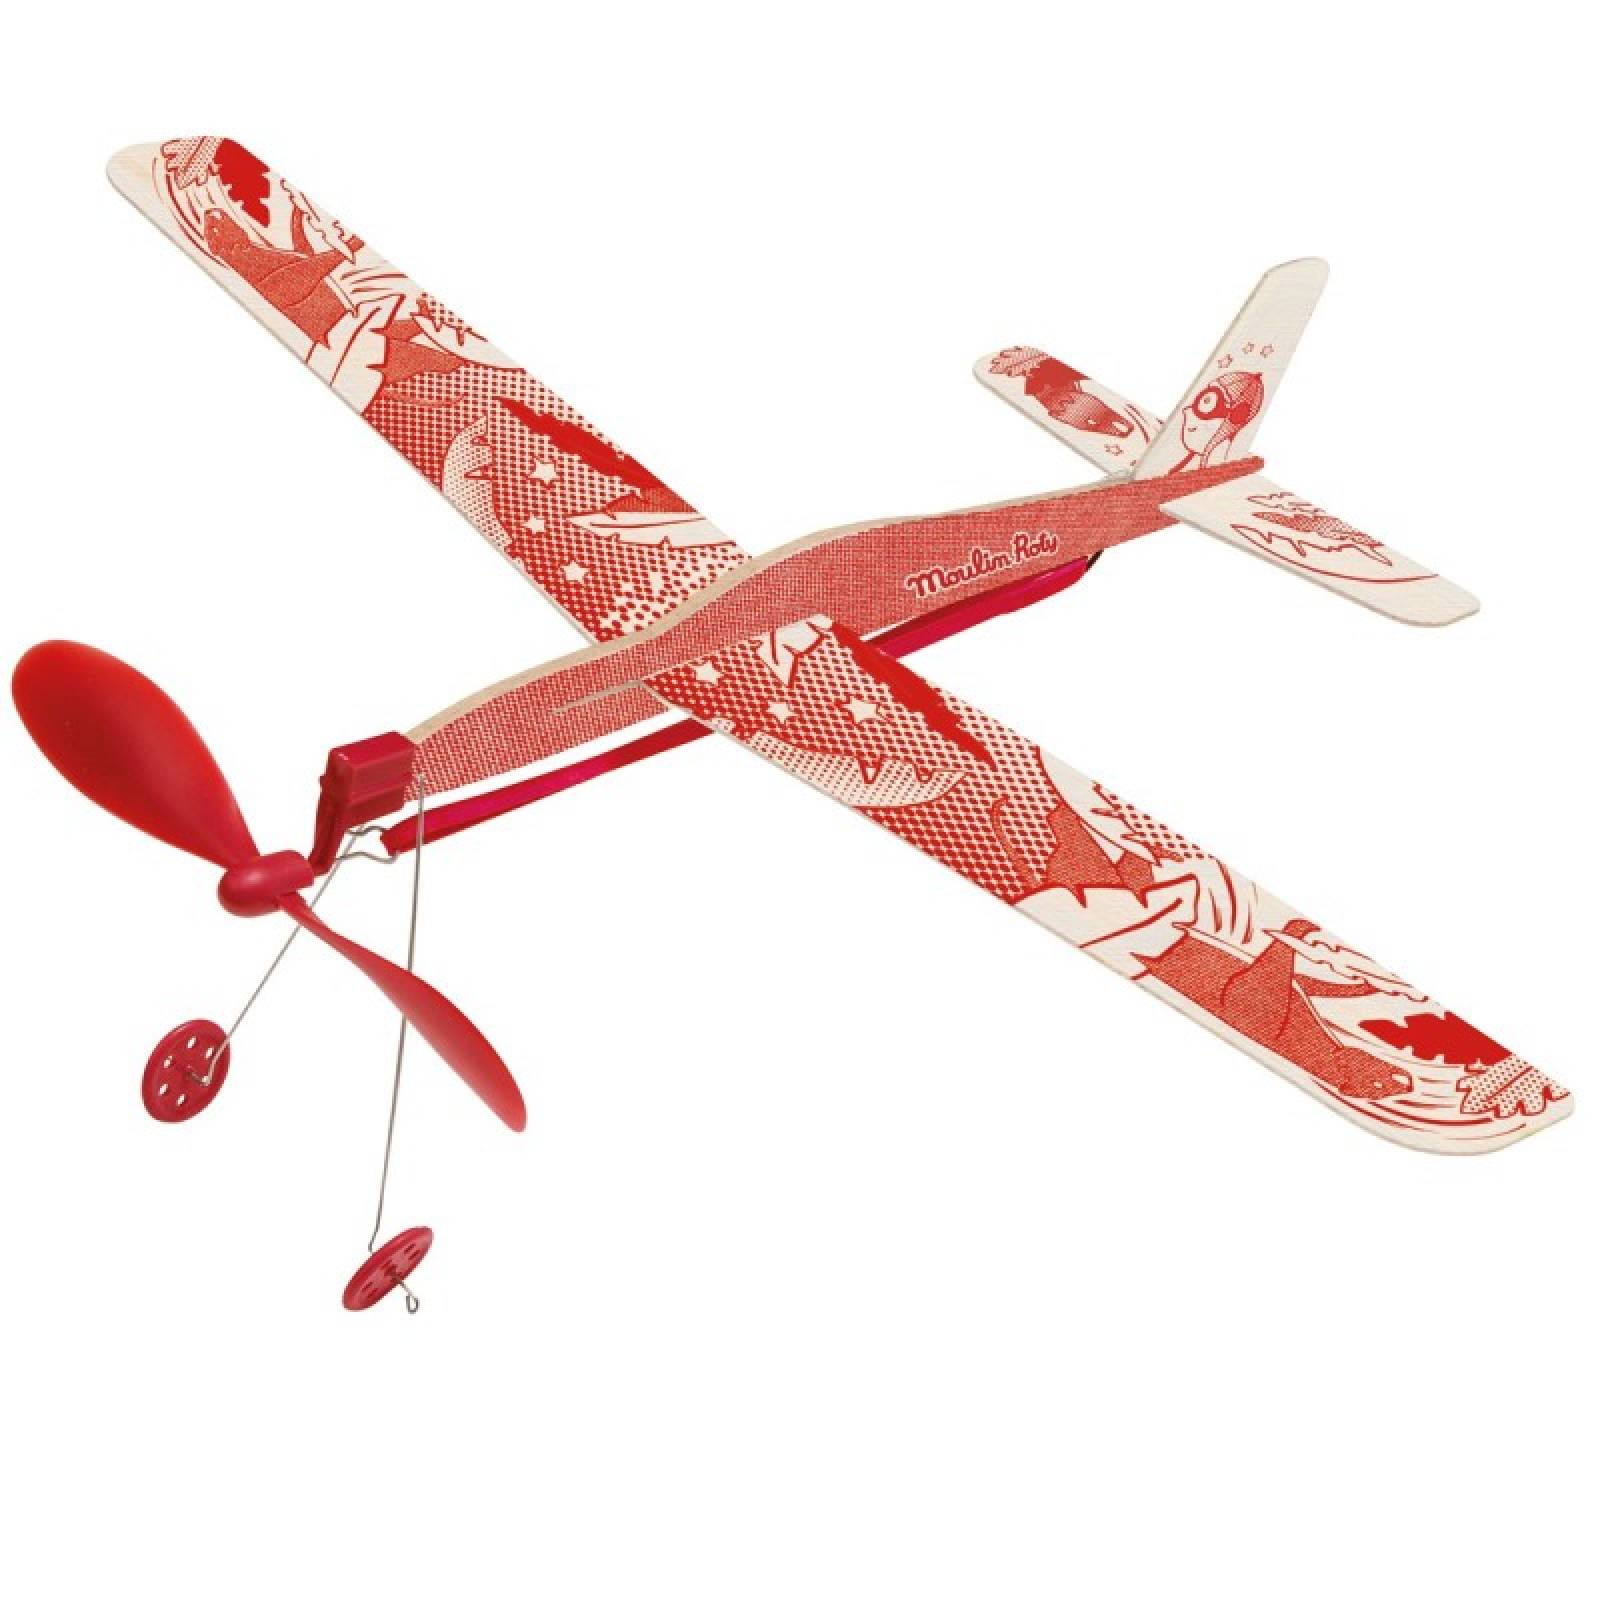 Rubber Band Wooden Glider Plane 6+ thumbnails